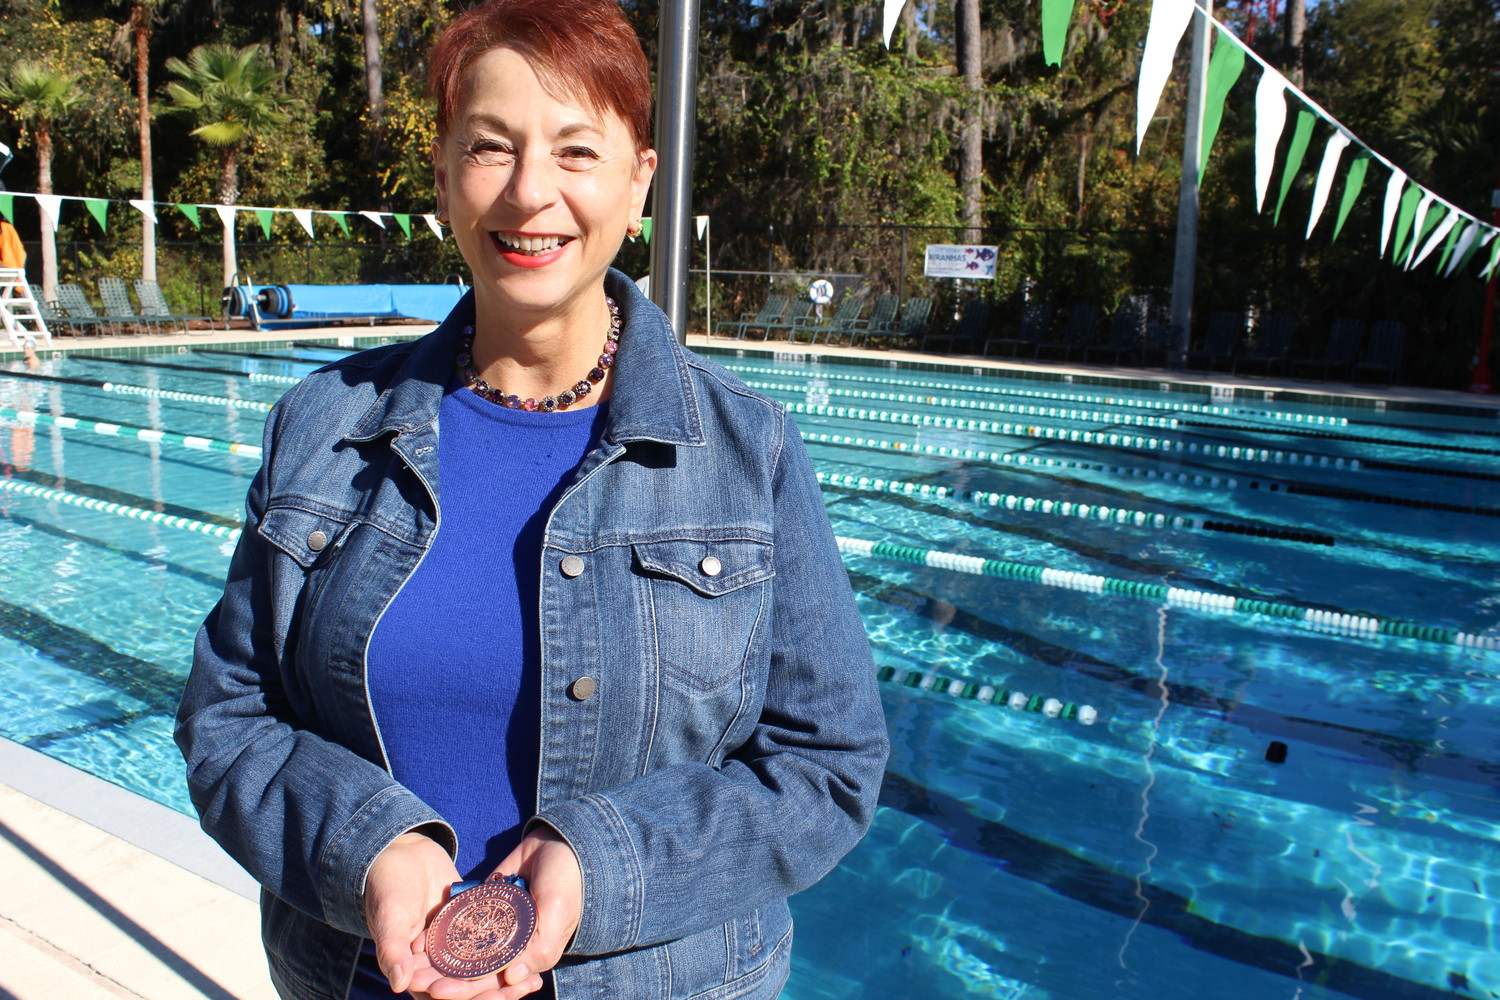 Dr. Rebecca Ann Miles stands by the Ponte Vedra YMCA pool where she trained to win a bronze medal in the 500-yard freestyle race of the Senior Olympic Games in early December. Miles dedicated her accomplishment to Dr. Jerry Rabinowitz, her primary care physician of 30 years in Pittsburgh who was killed in the Tree of Life Synagogue mass shooting in October.